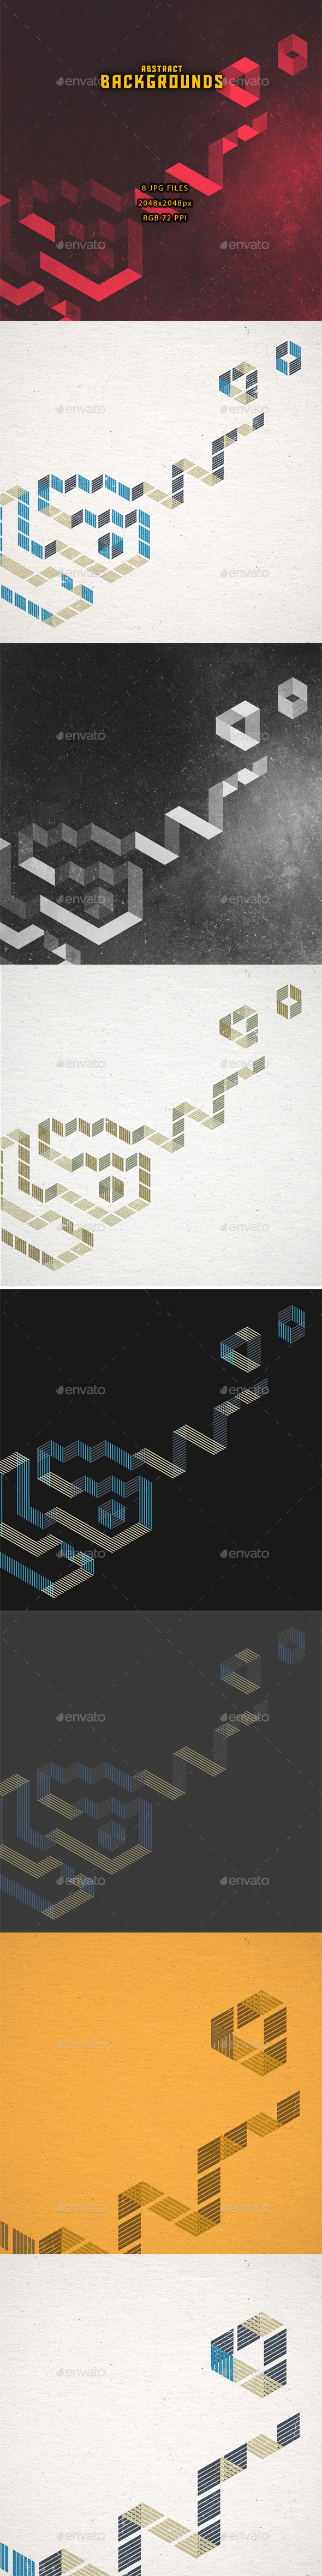 GraphicRiver Abstract Backgrounds Set 11277315